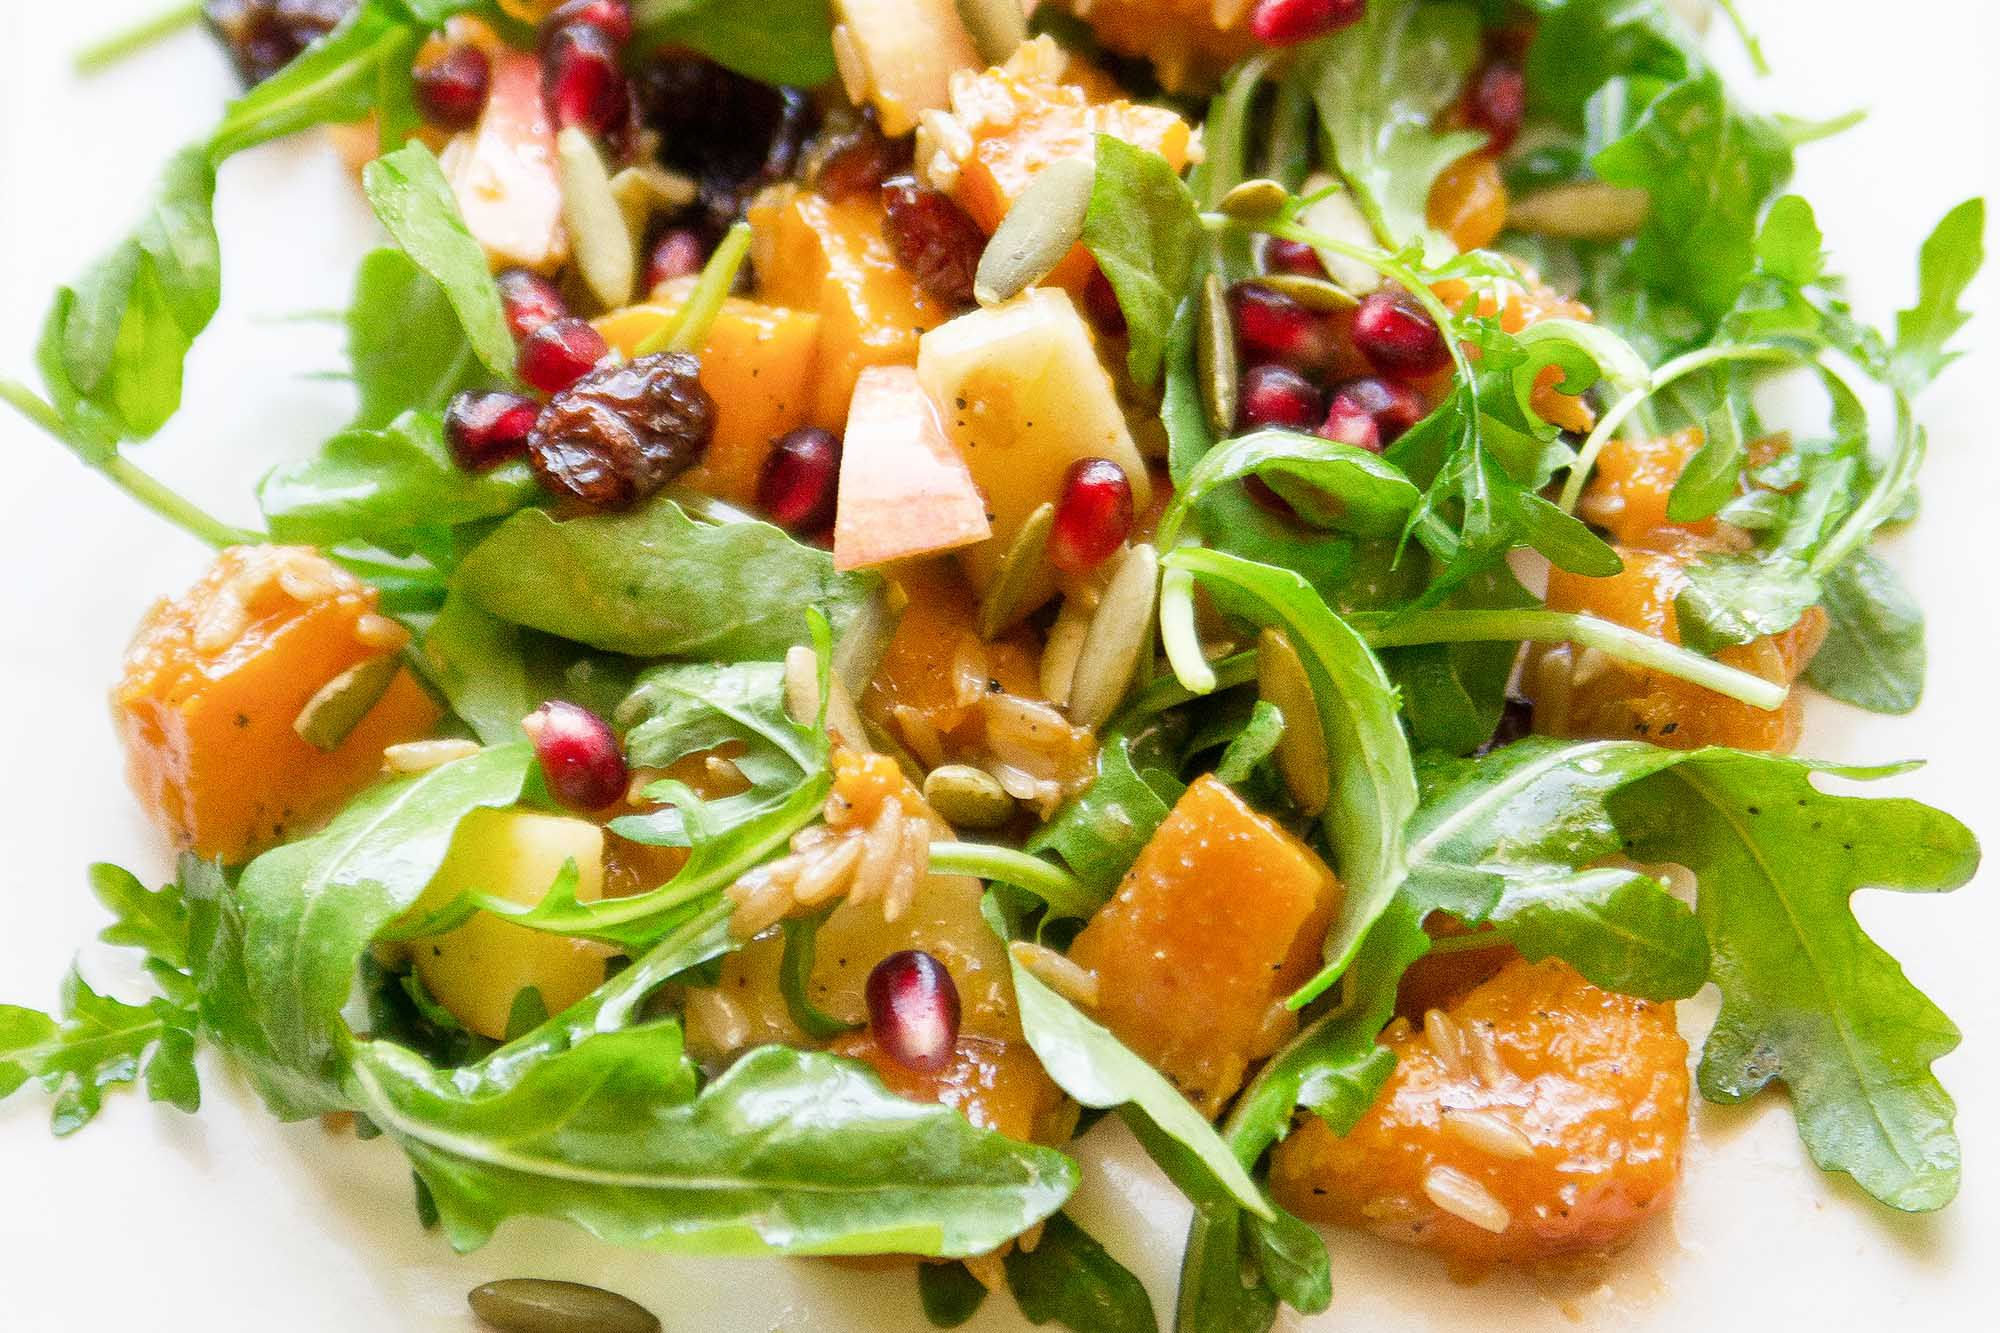 Harvest Salad with Roasted Butternut Squash